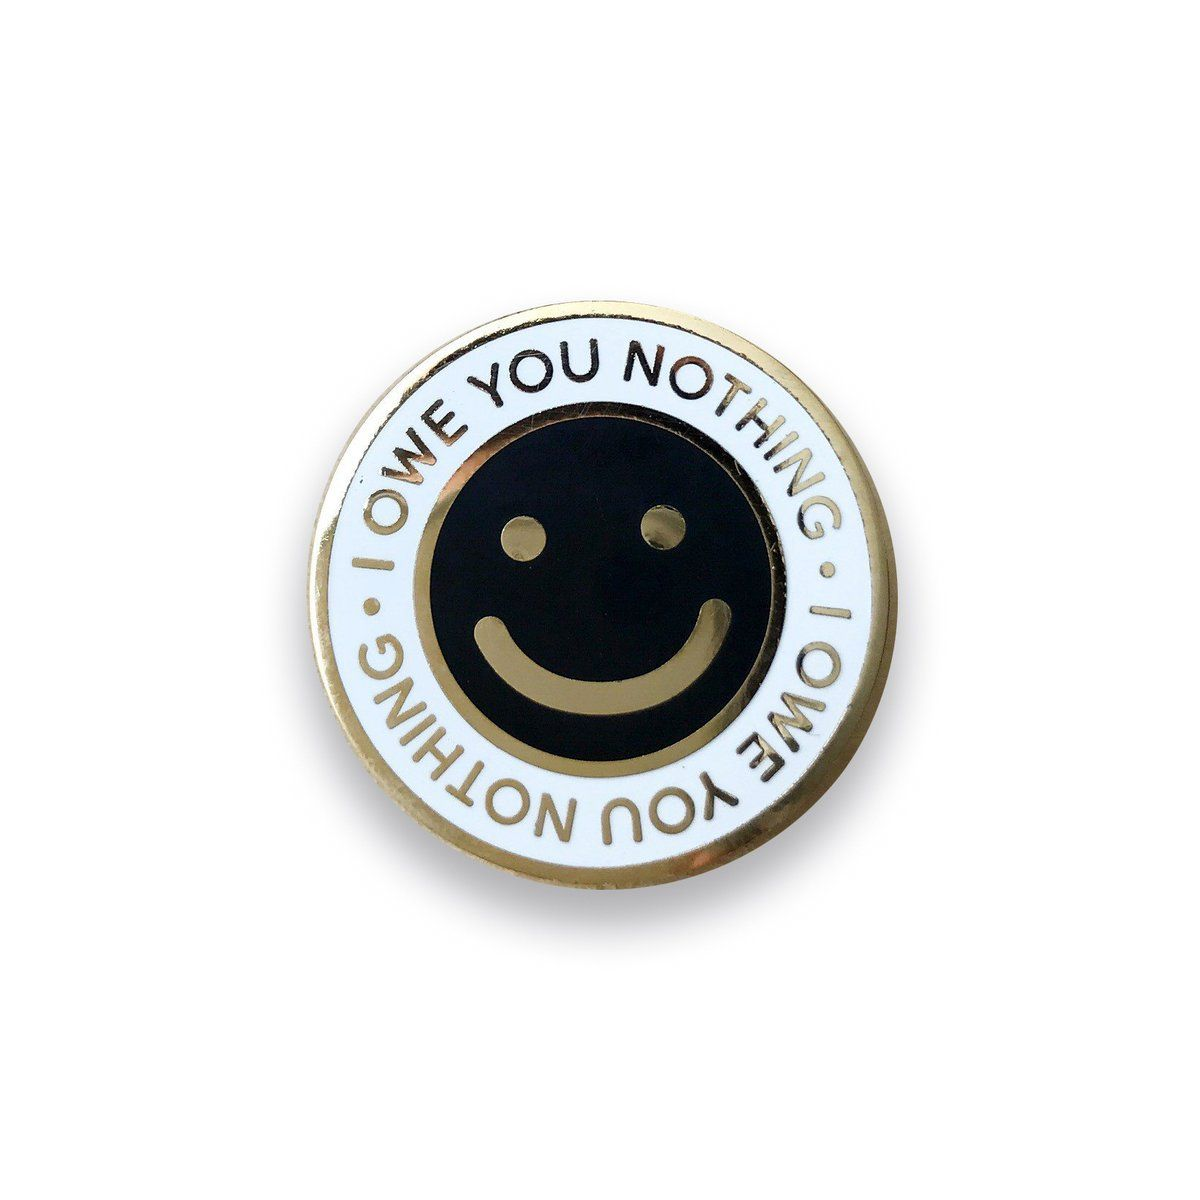 One Of Our Favourite Pieces A Cheeky Smiley Face Featuring Jewelry Quality Gold Plating 1 Lapel Pin Complete With R Lapel Pins Spoon Jewelry Diy Pretty Pins